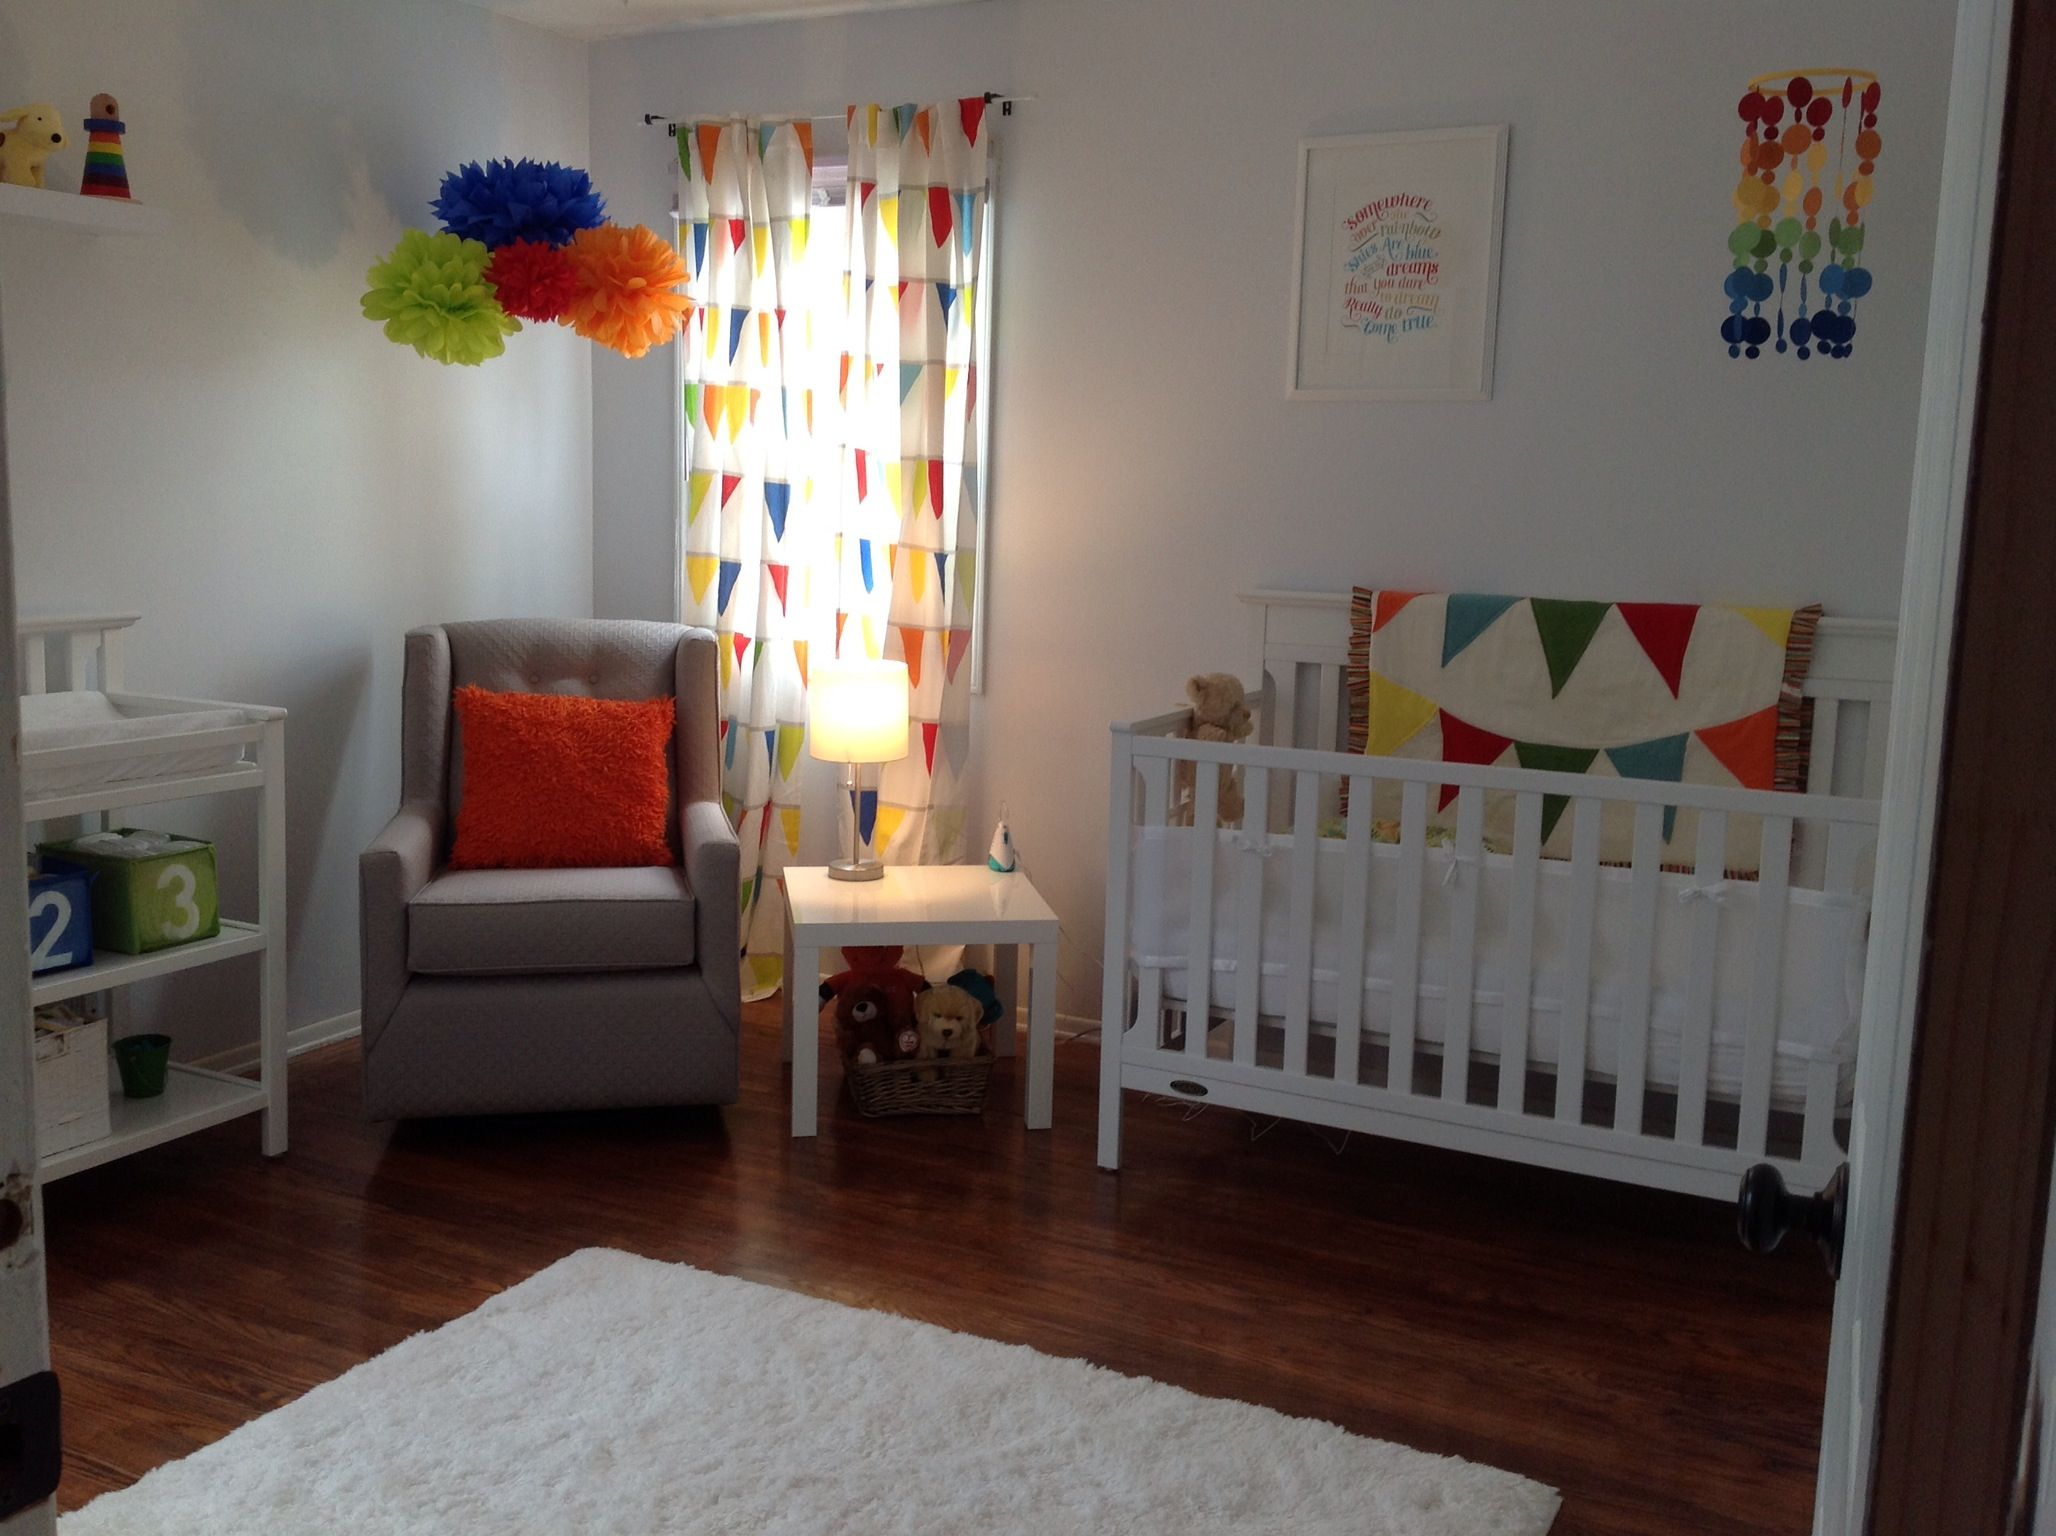 Nursery Rainbow primary colors with white furniture and accents